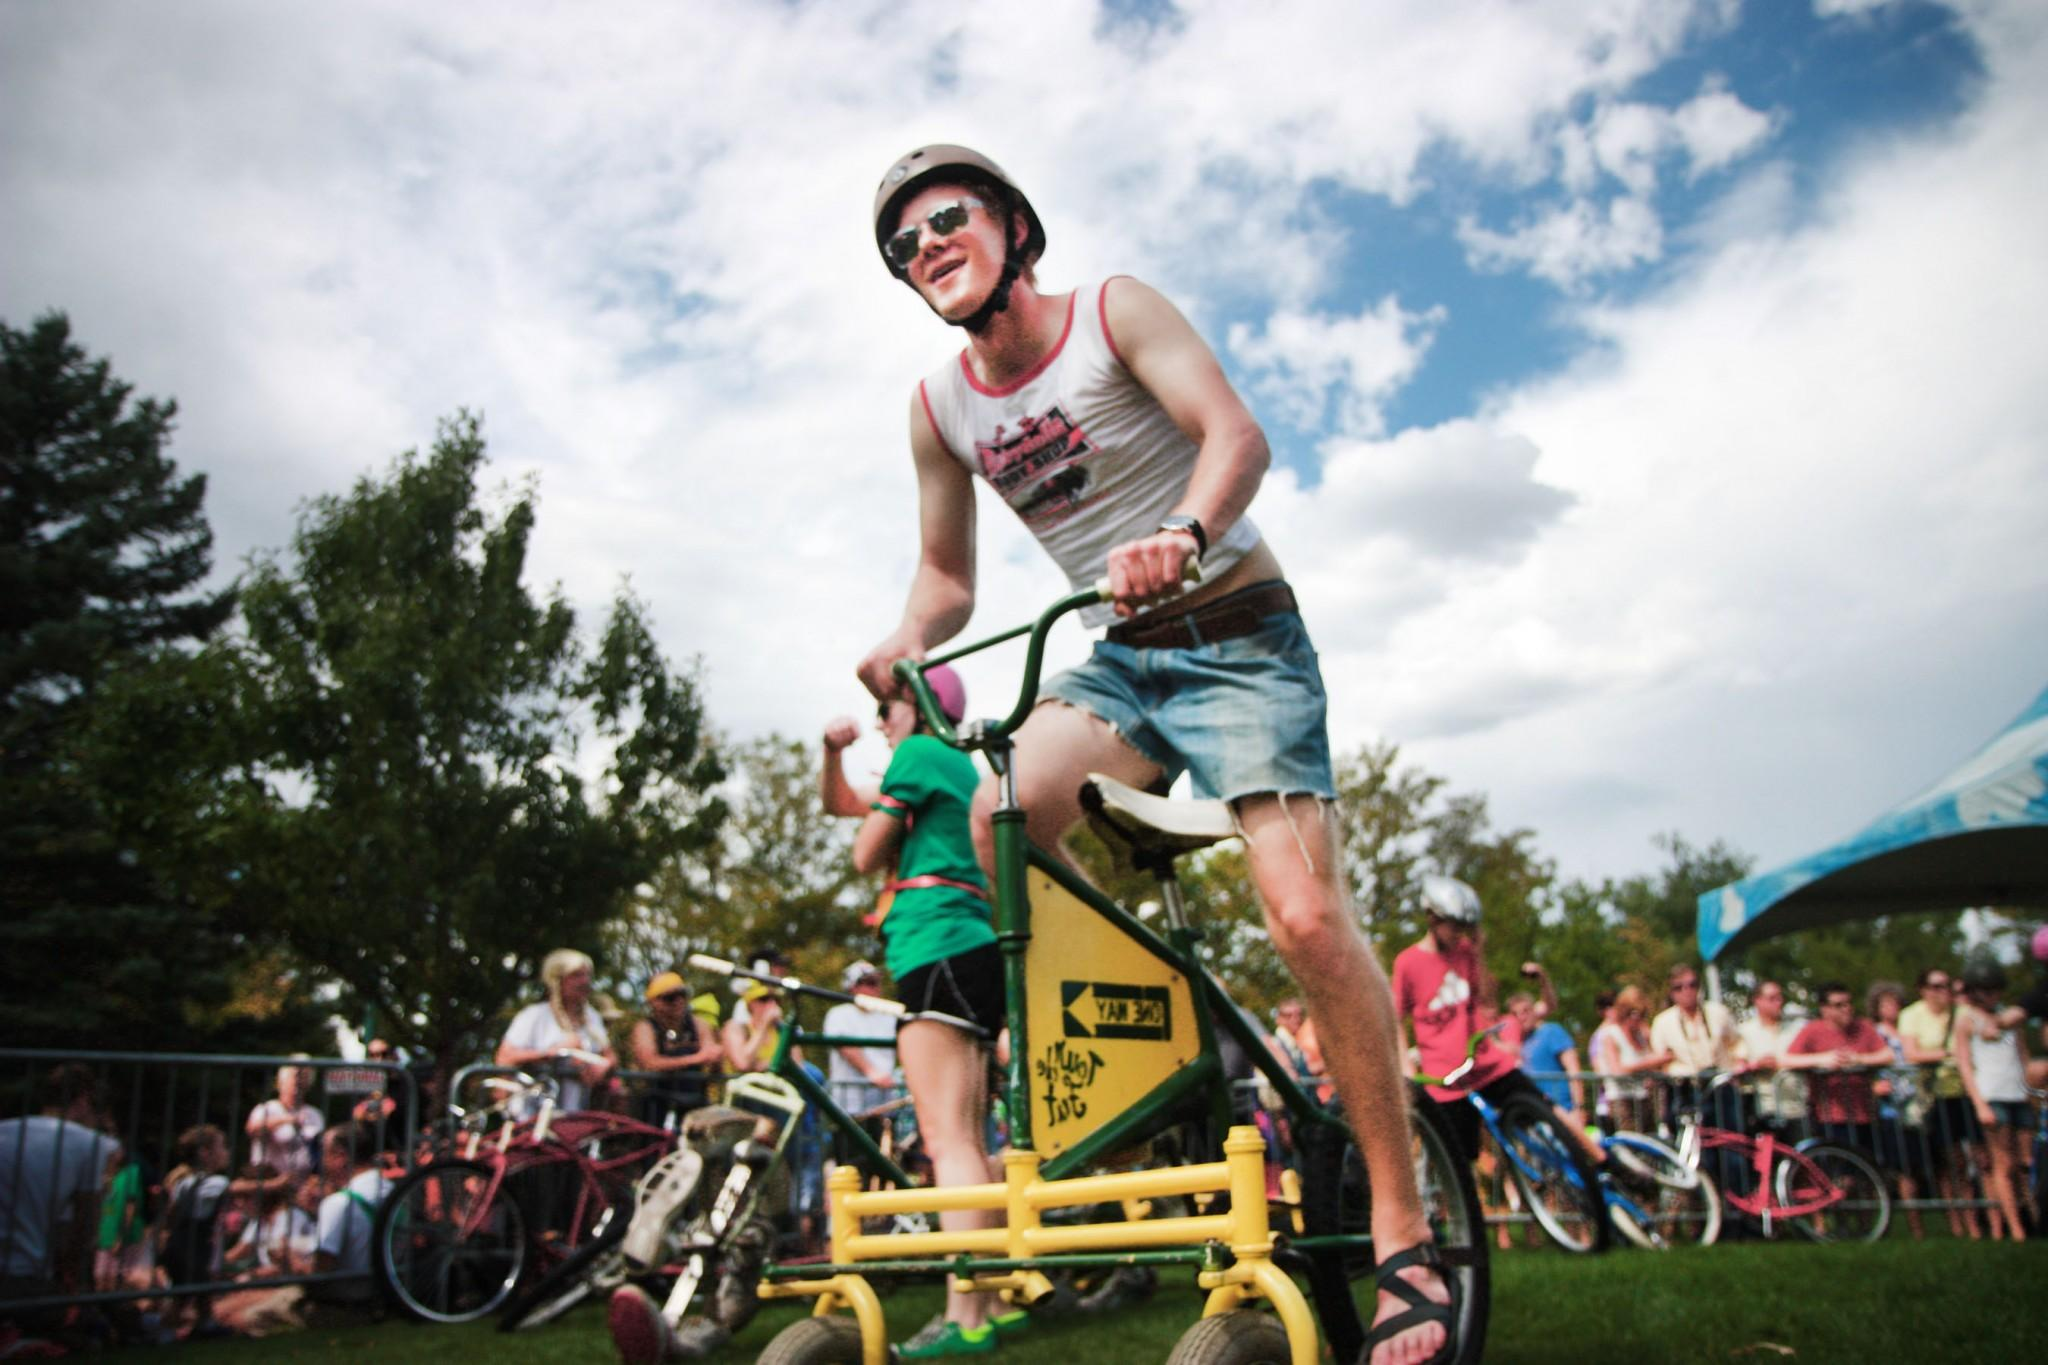 New Belgium set up an arena for excited Tour de Fat participants to zip around on quirky and fun bikes during the Tour de Fat Festival August 2013.  (Collegian File Photo)